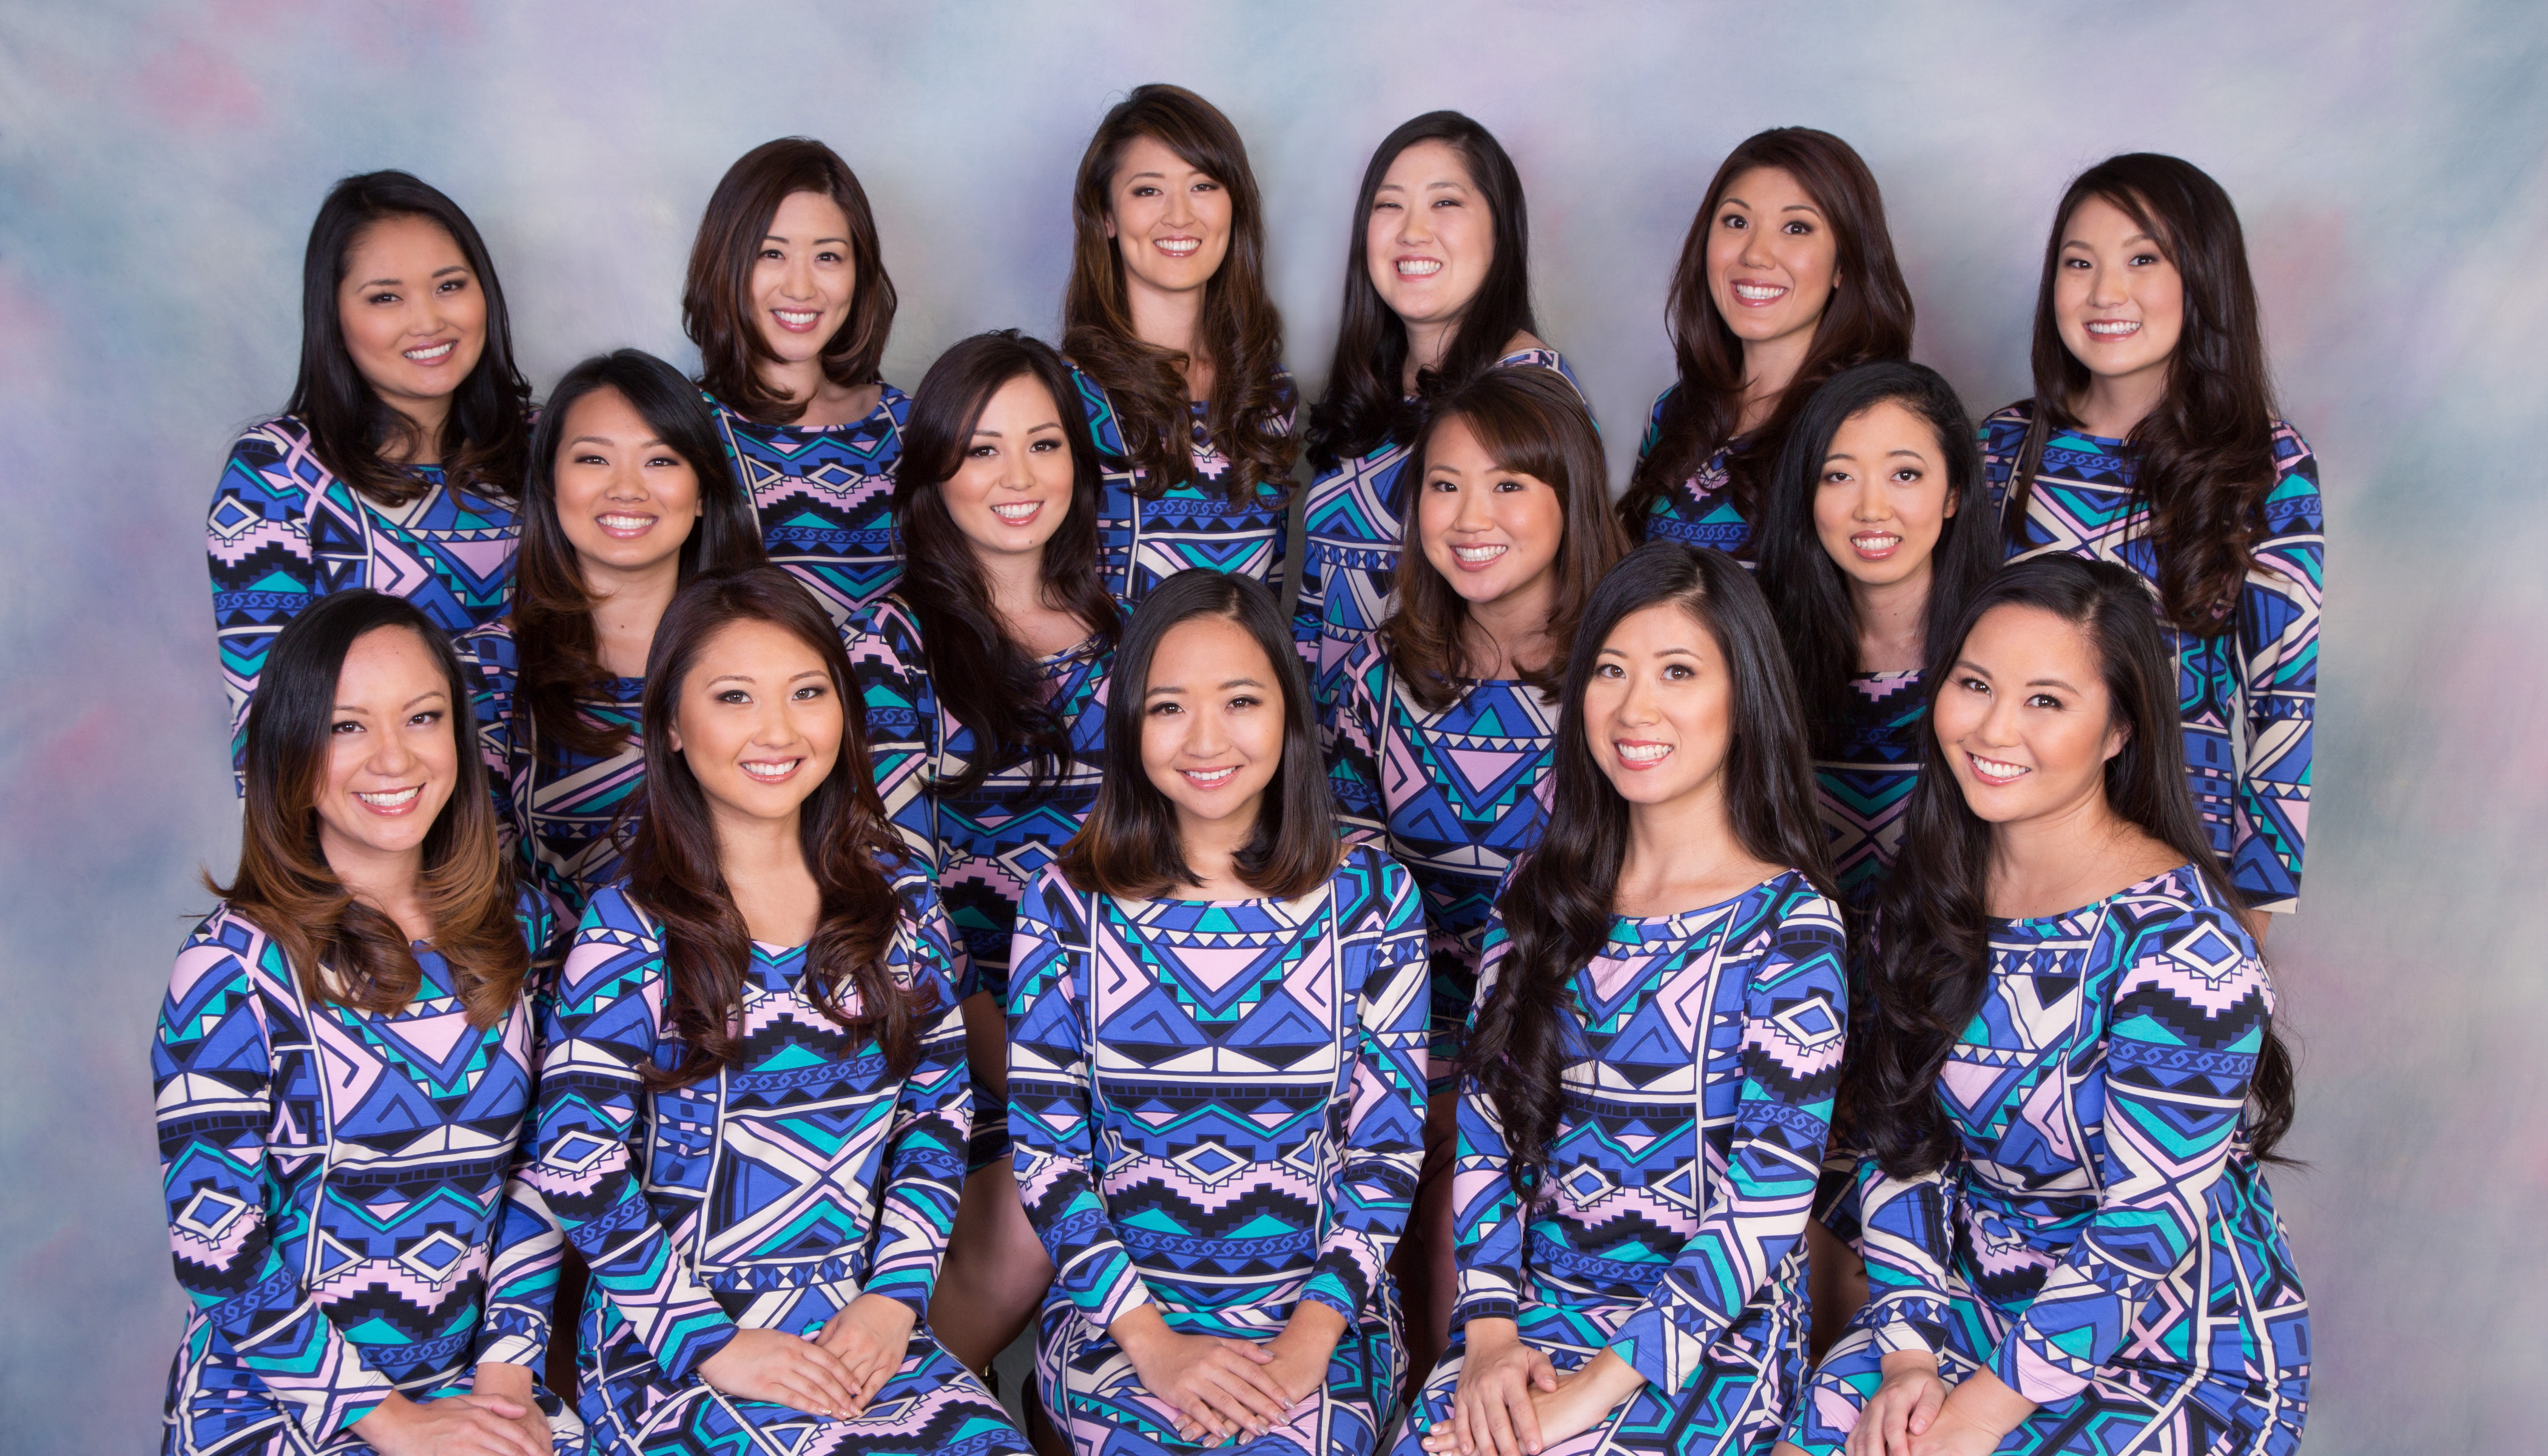 Group photo of the 65th Cherry Blossom Festival queen contestants.